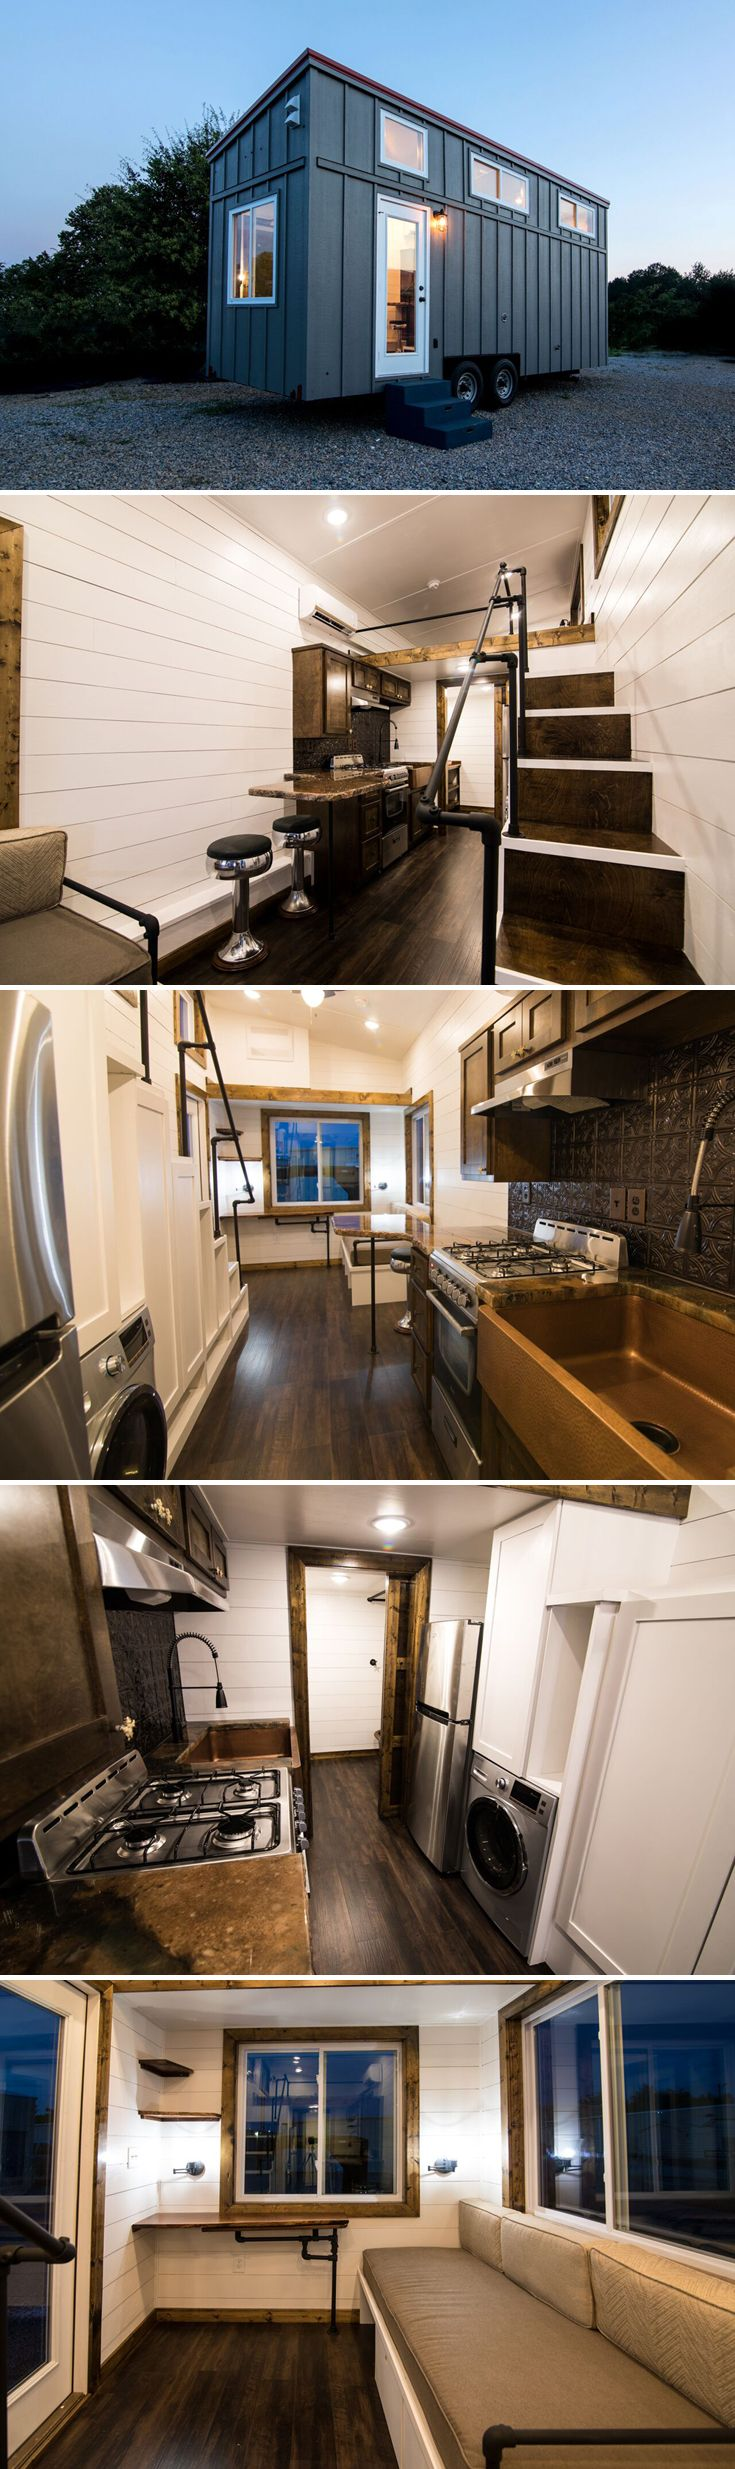 From Harmony Tiny Homes is the Hyacinth, a 24-foot tiny house on wheels with a gorgeous kitchen featuring a custom made granite countertop and bar stools.